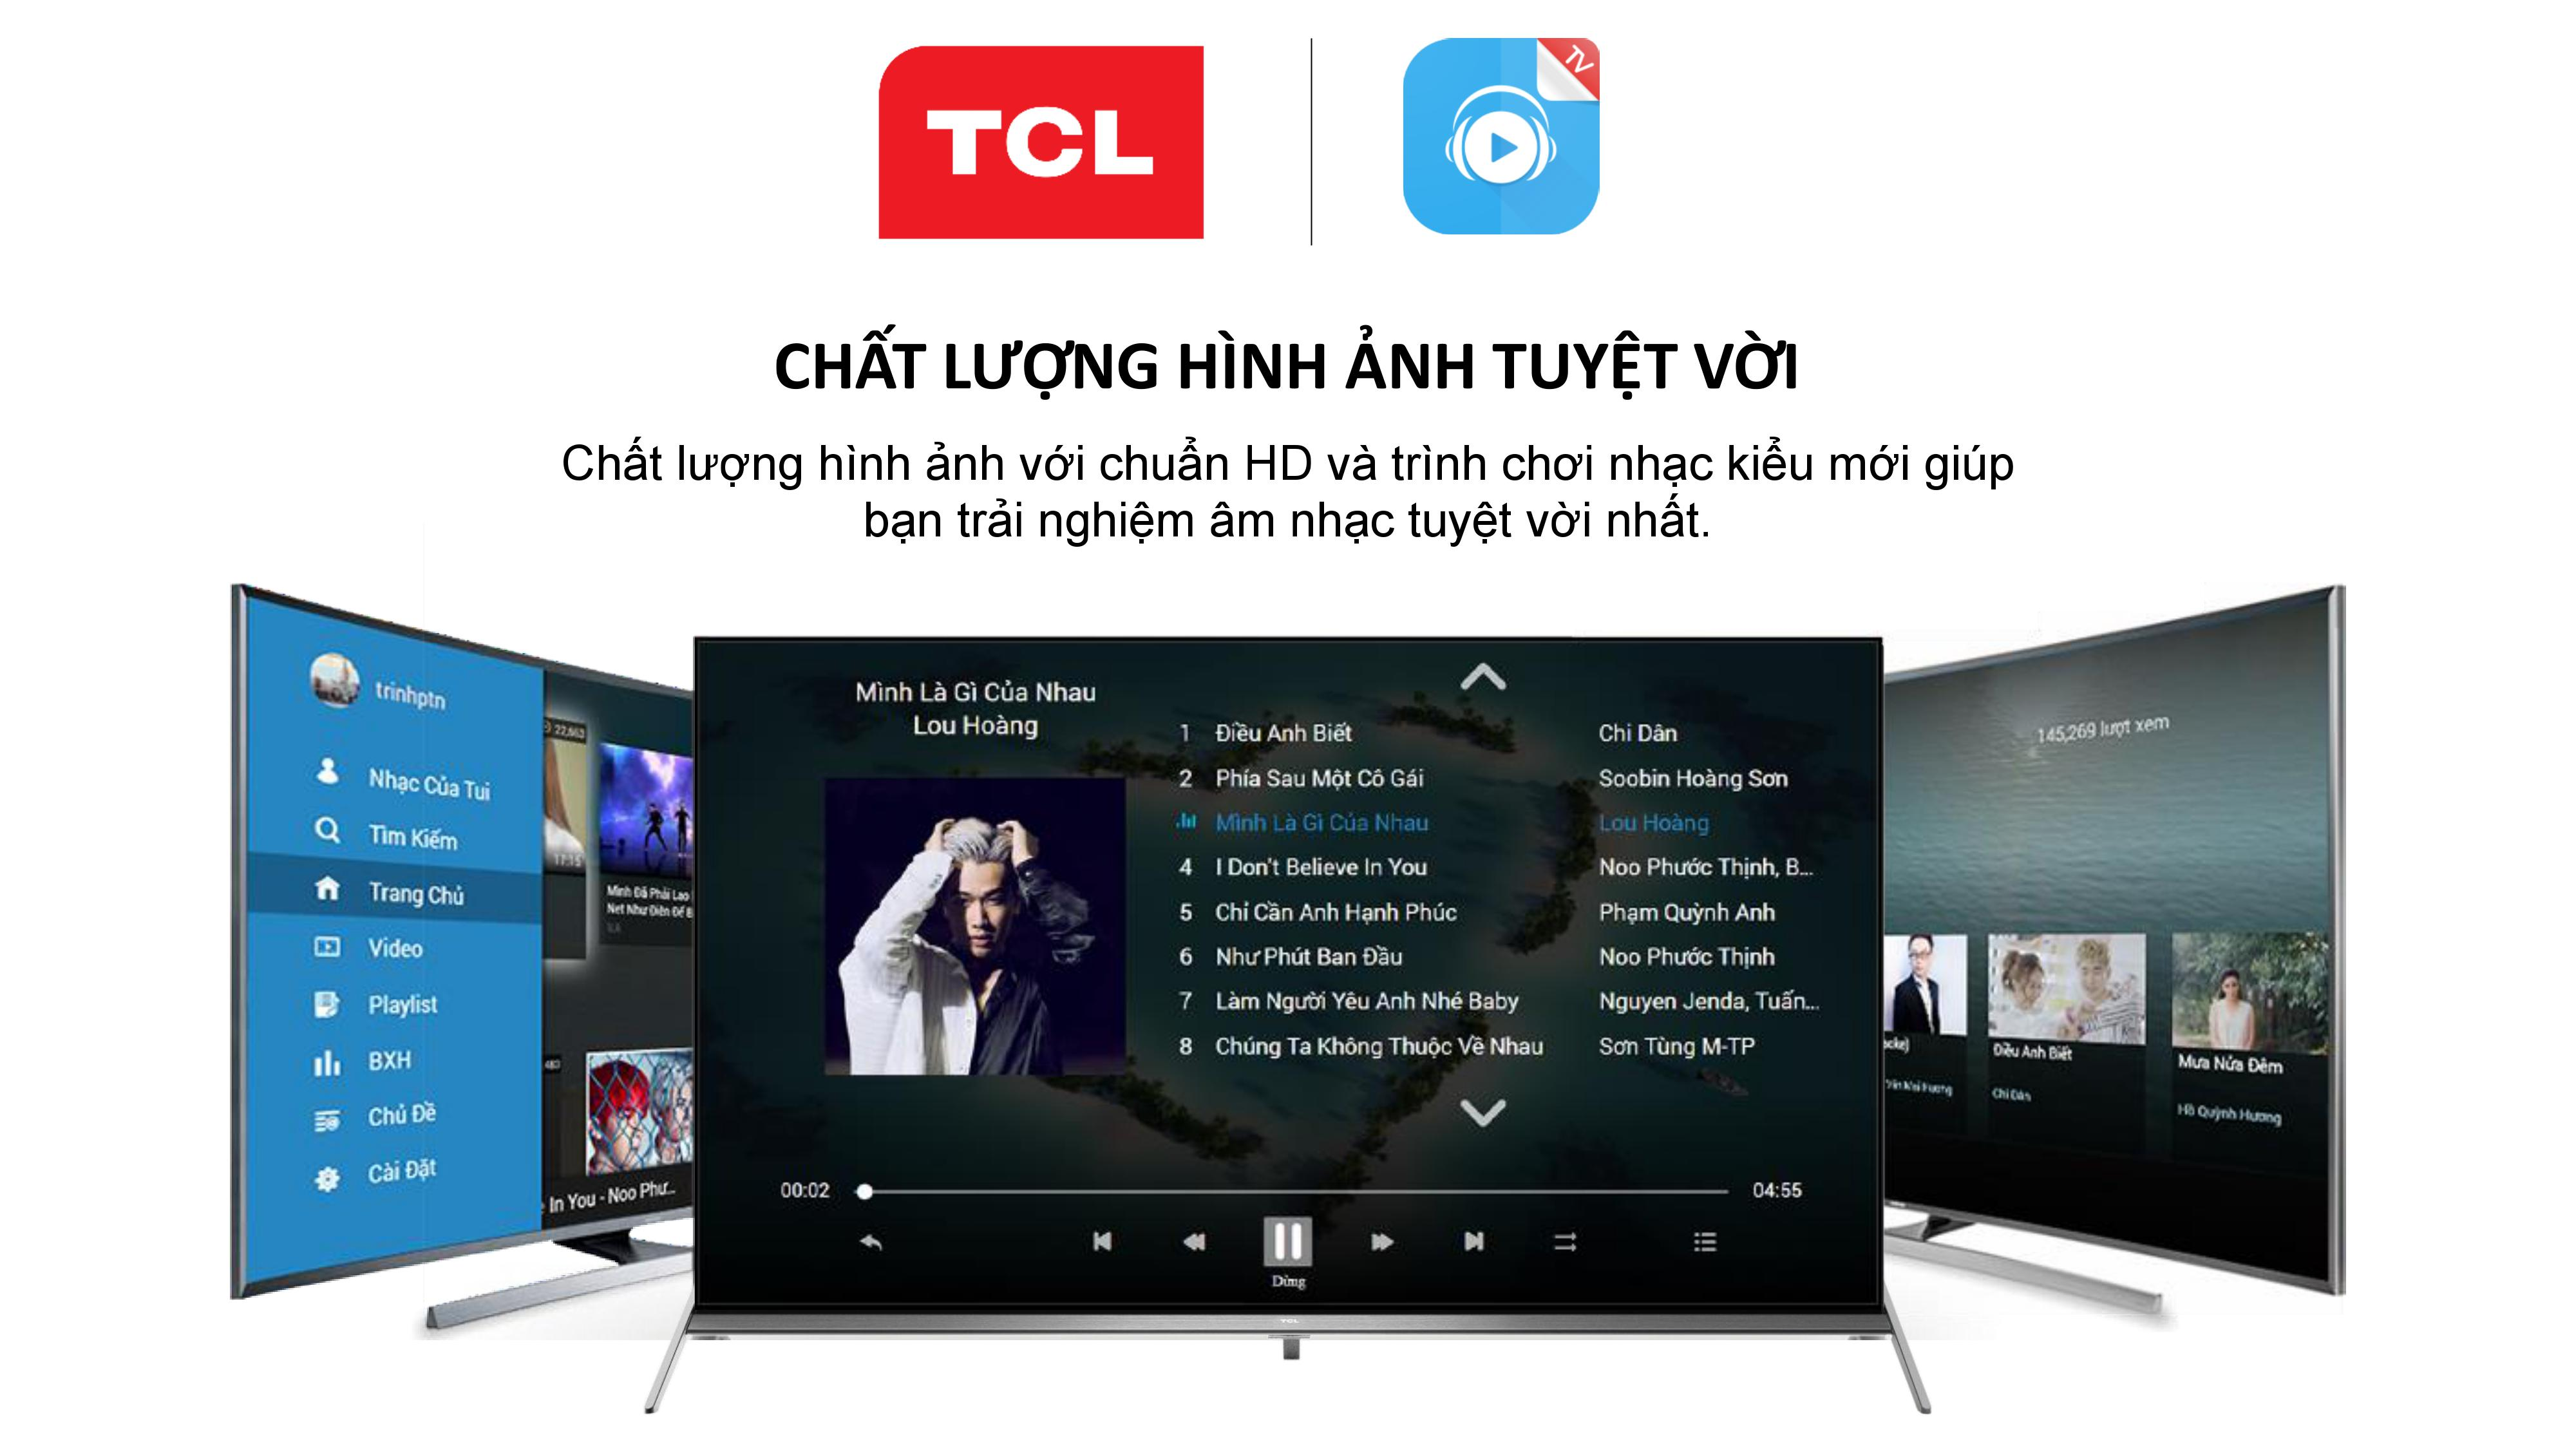 TCL 10 Pro 16mp super wide-angel